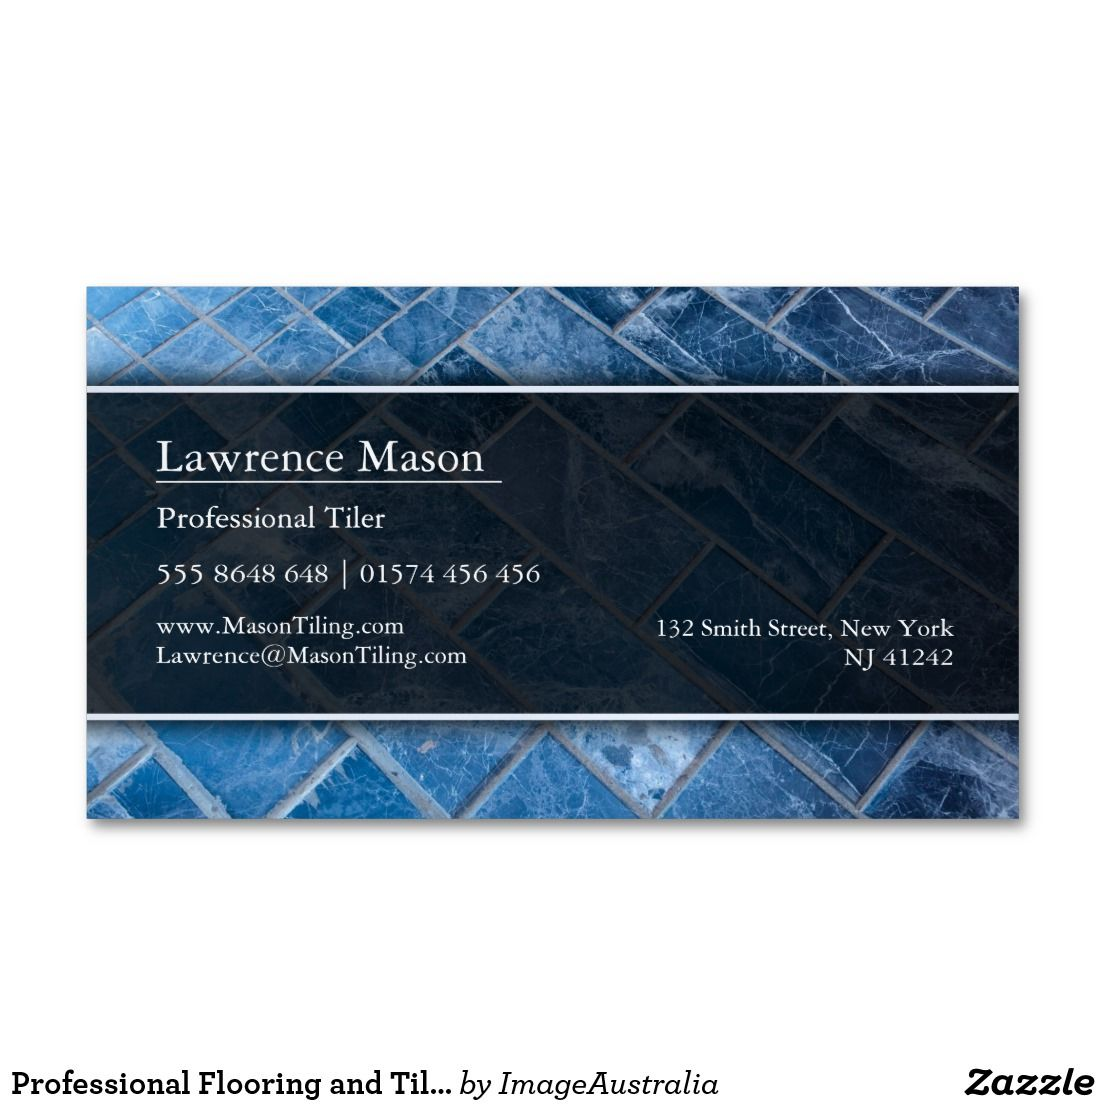 Professional Flooring And Tiler Business Card Zazzle Com Tiler Magnetic Business Cards Company Business Cards